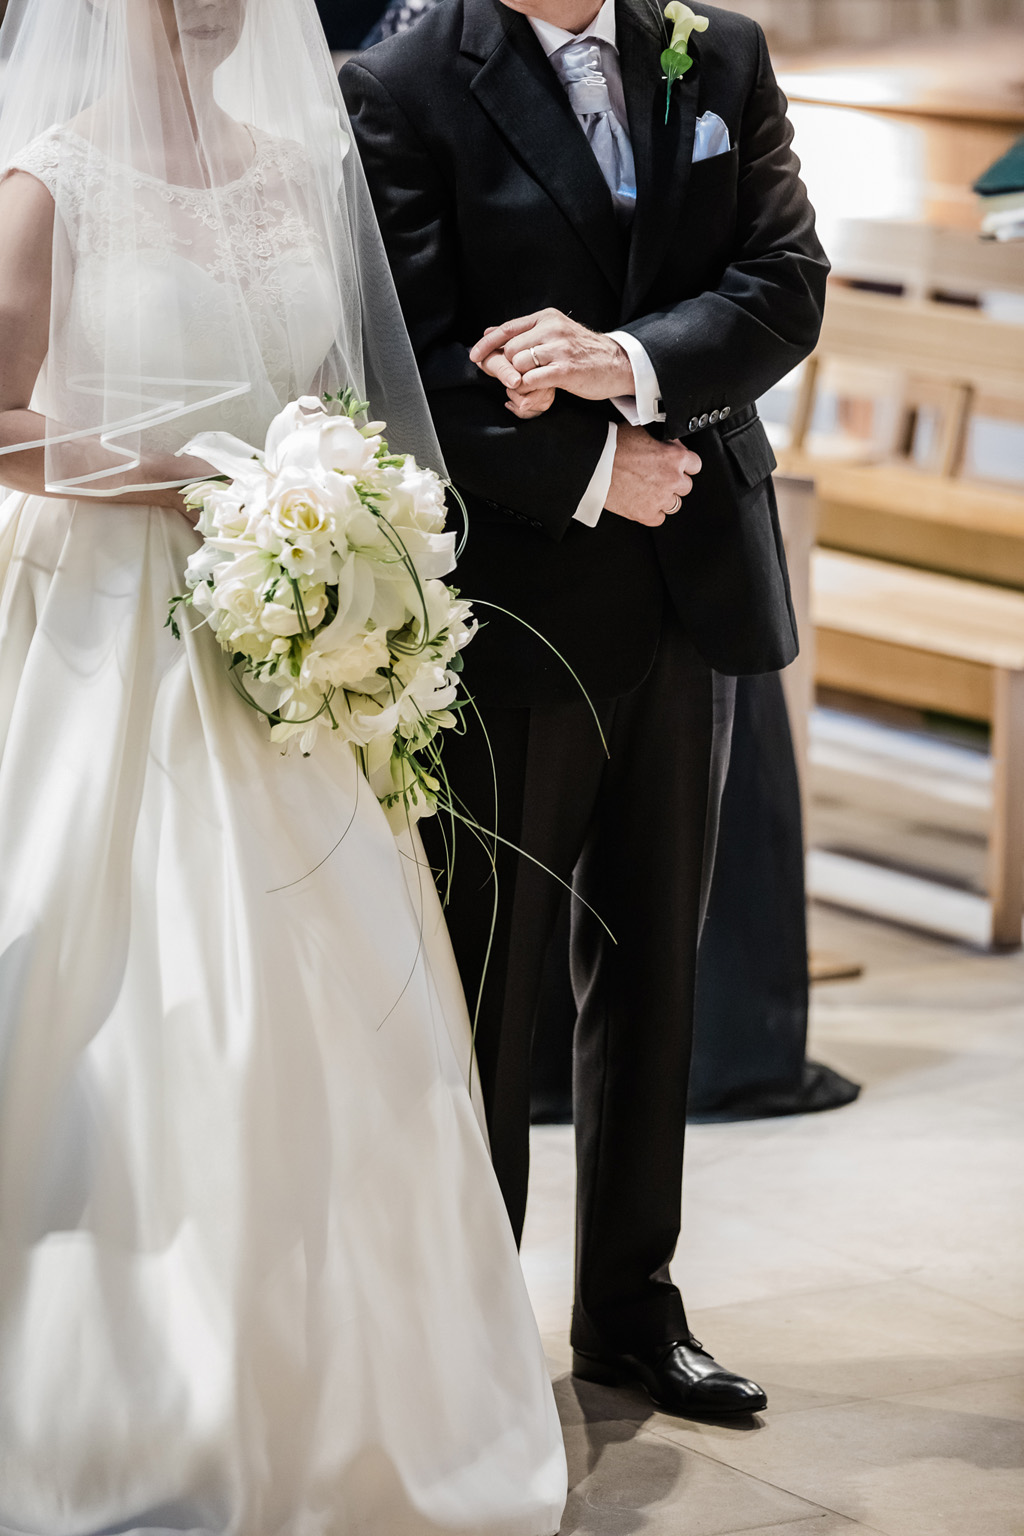 Formal wedding with bride and groom, bride holds a structured trailing bouquet in white with grasses